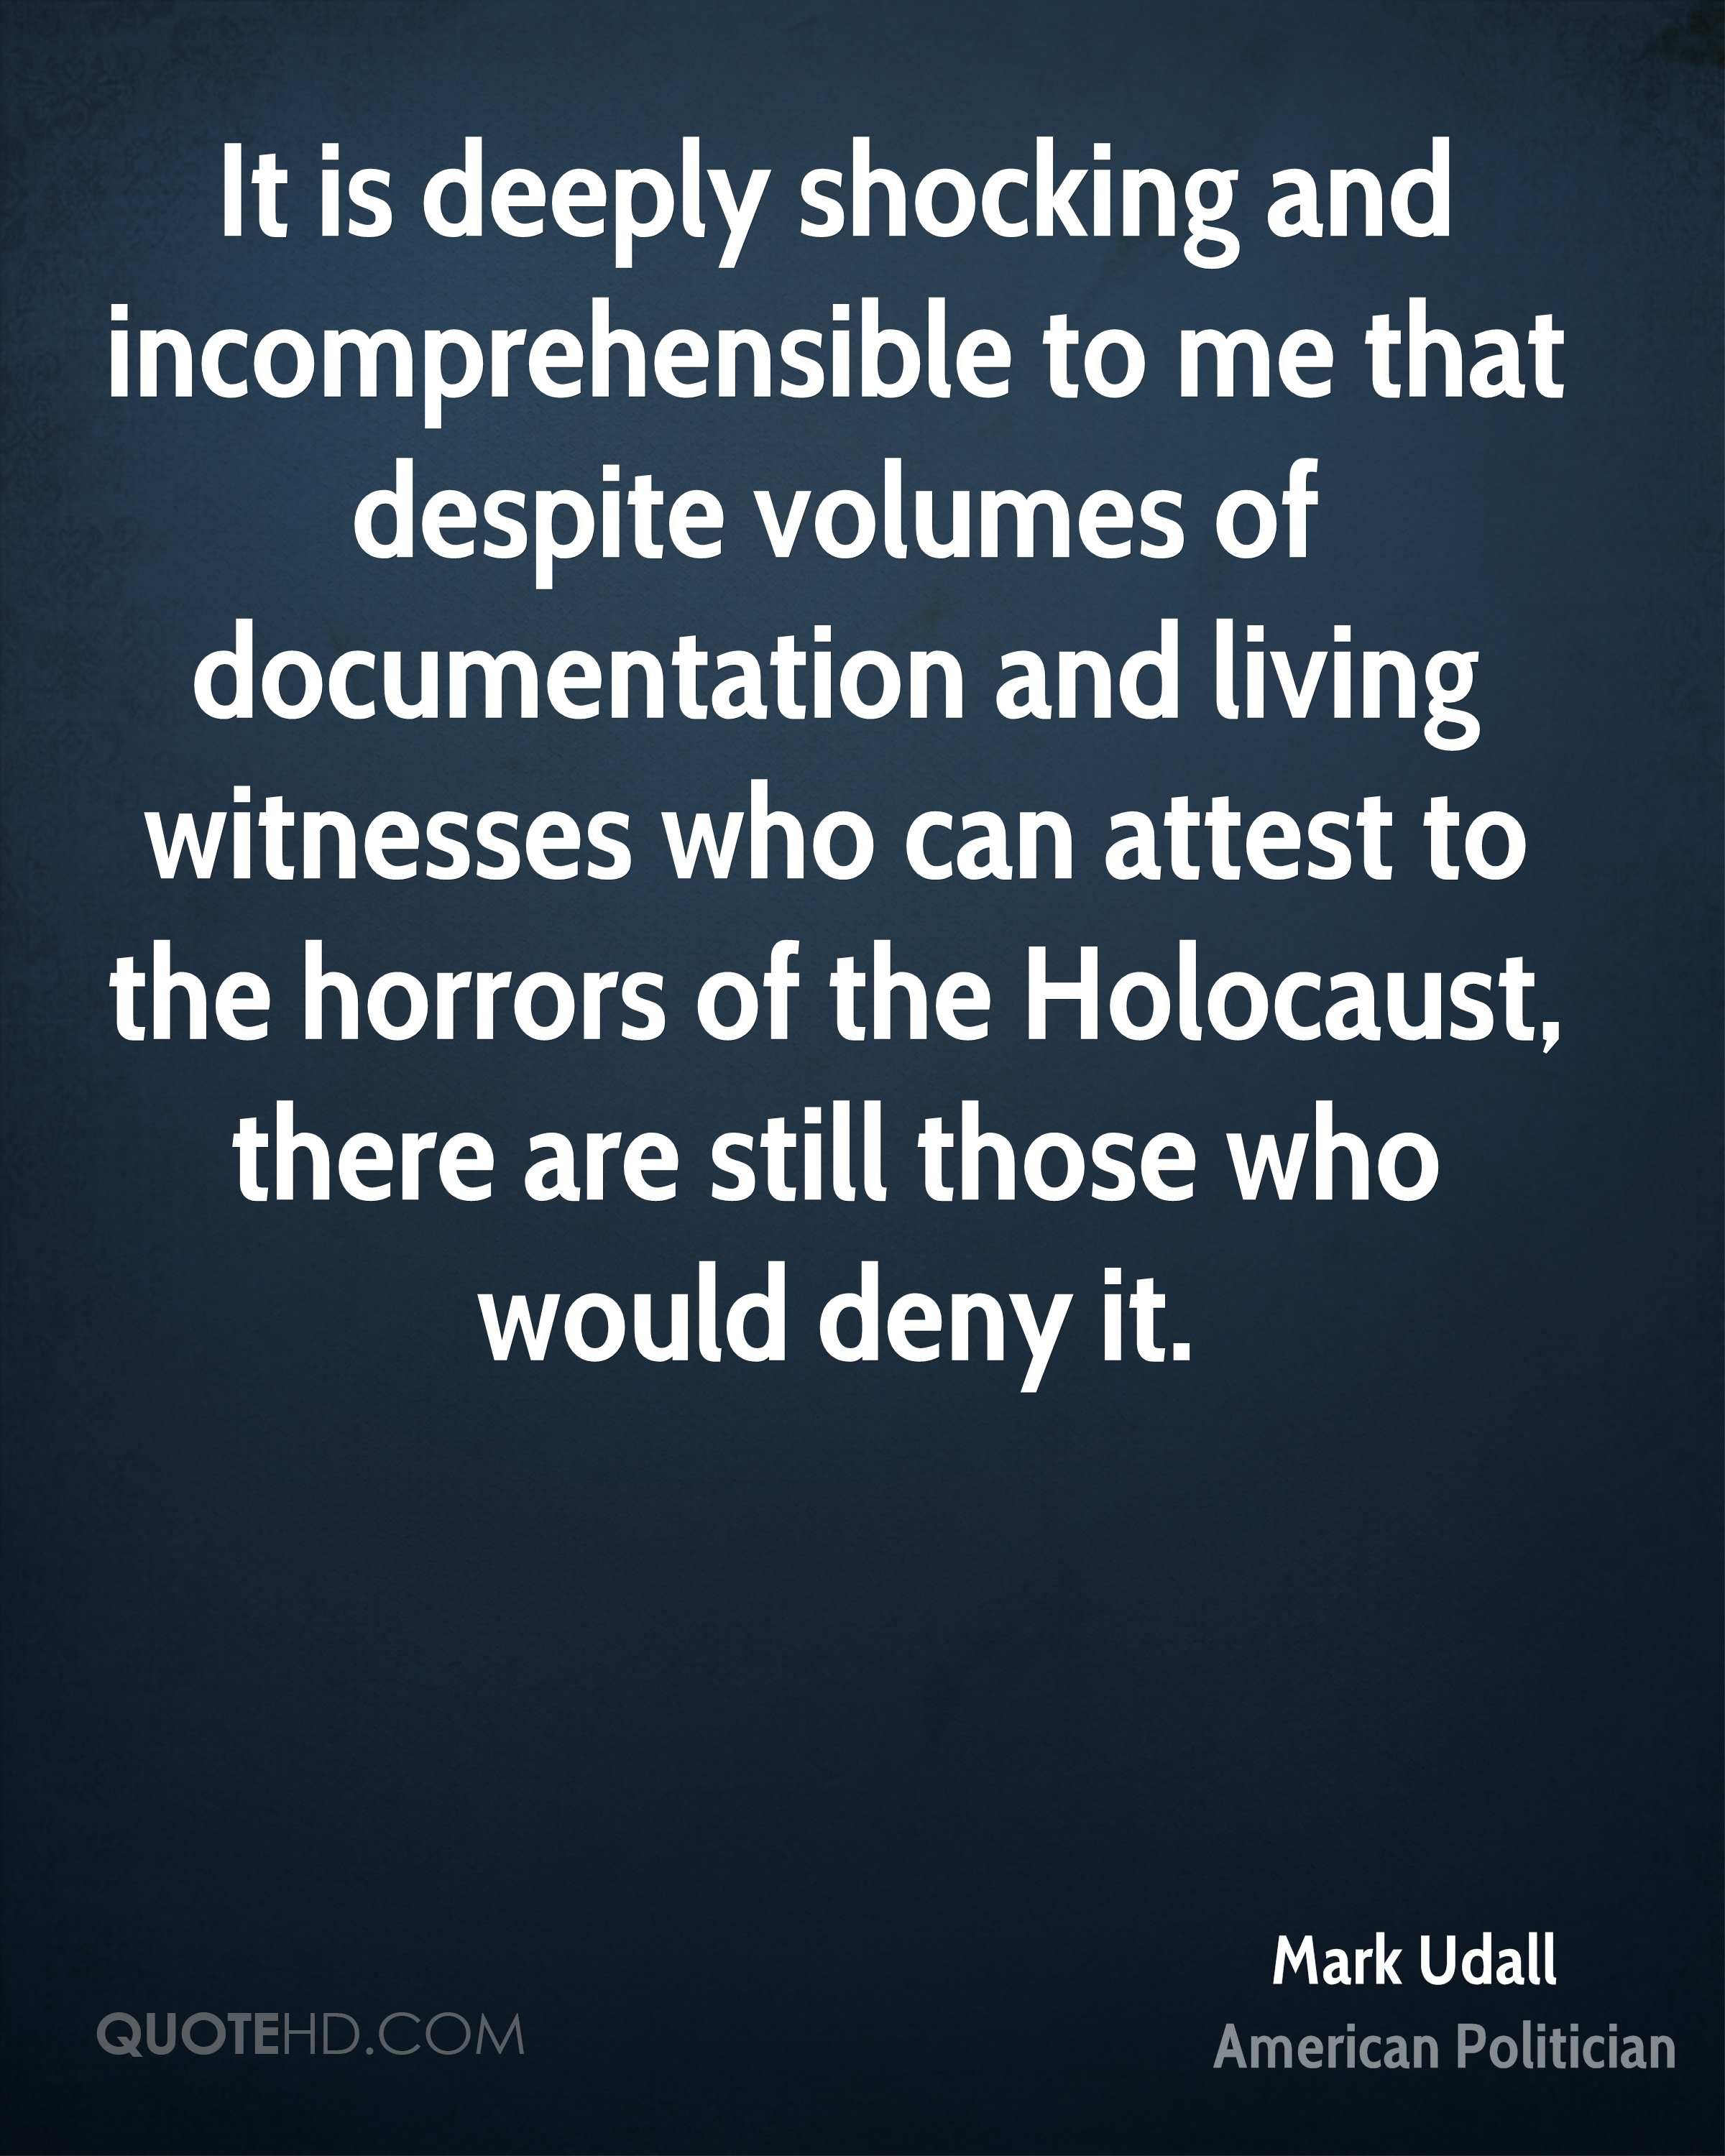 It is deeply shocking and incomprehensible to me that despite volumes of documentation and living witnesses who can attest to the horrors of the Holocaust, there are still those who would deny it.